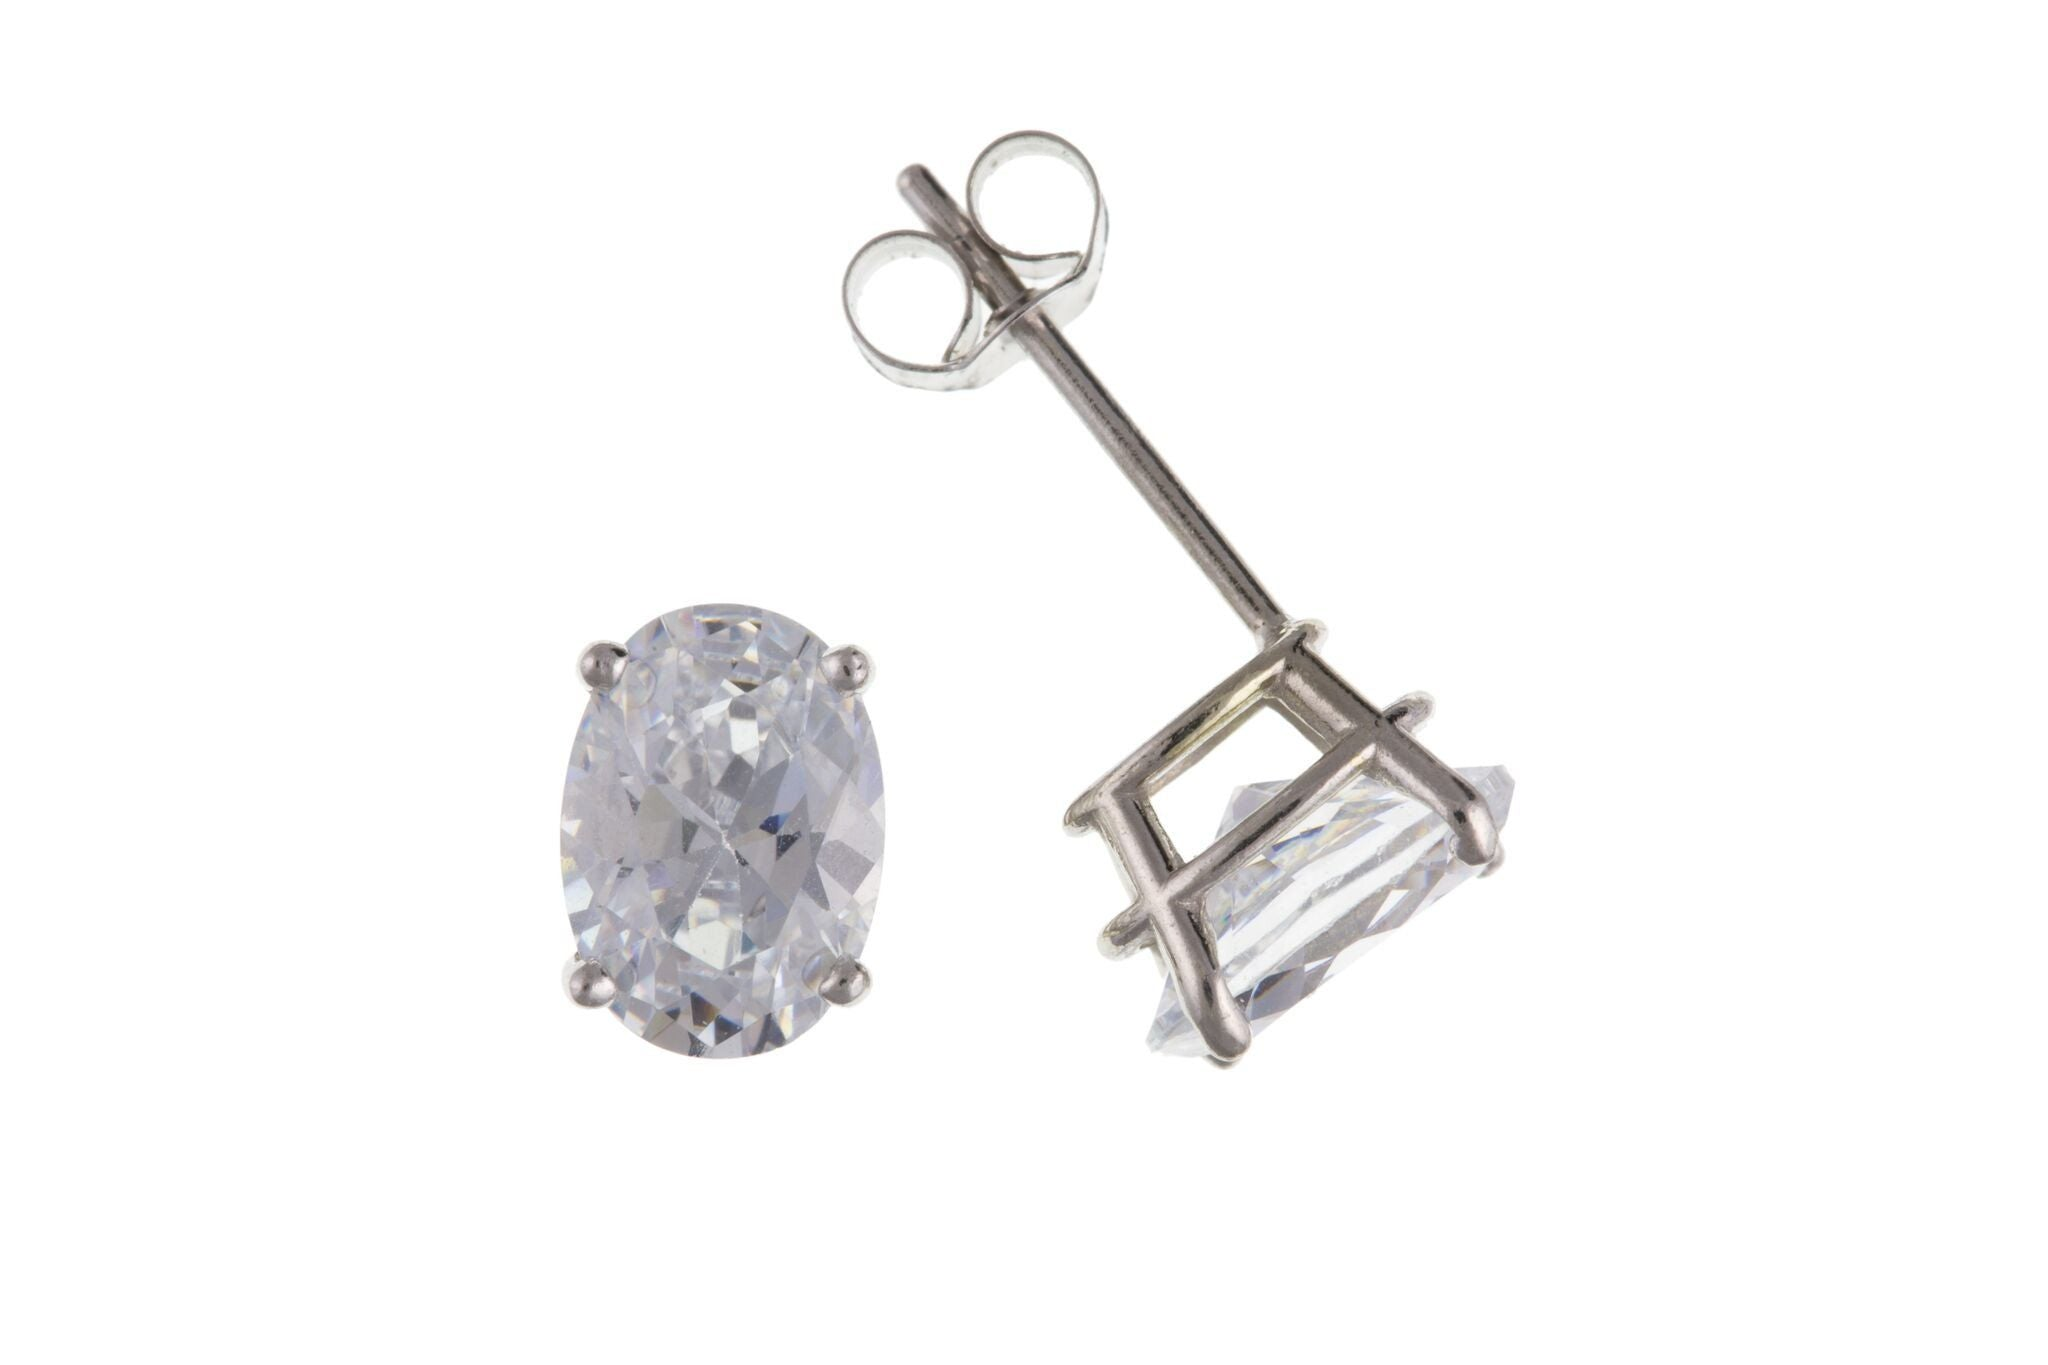 9ct White Gold Oval CZ Stud Earrings